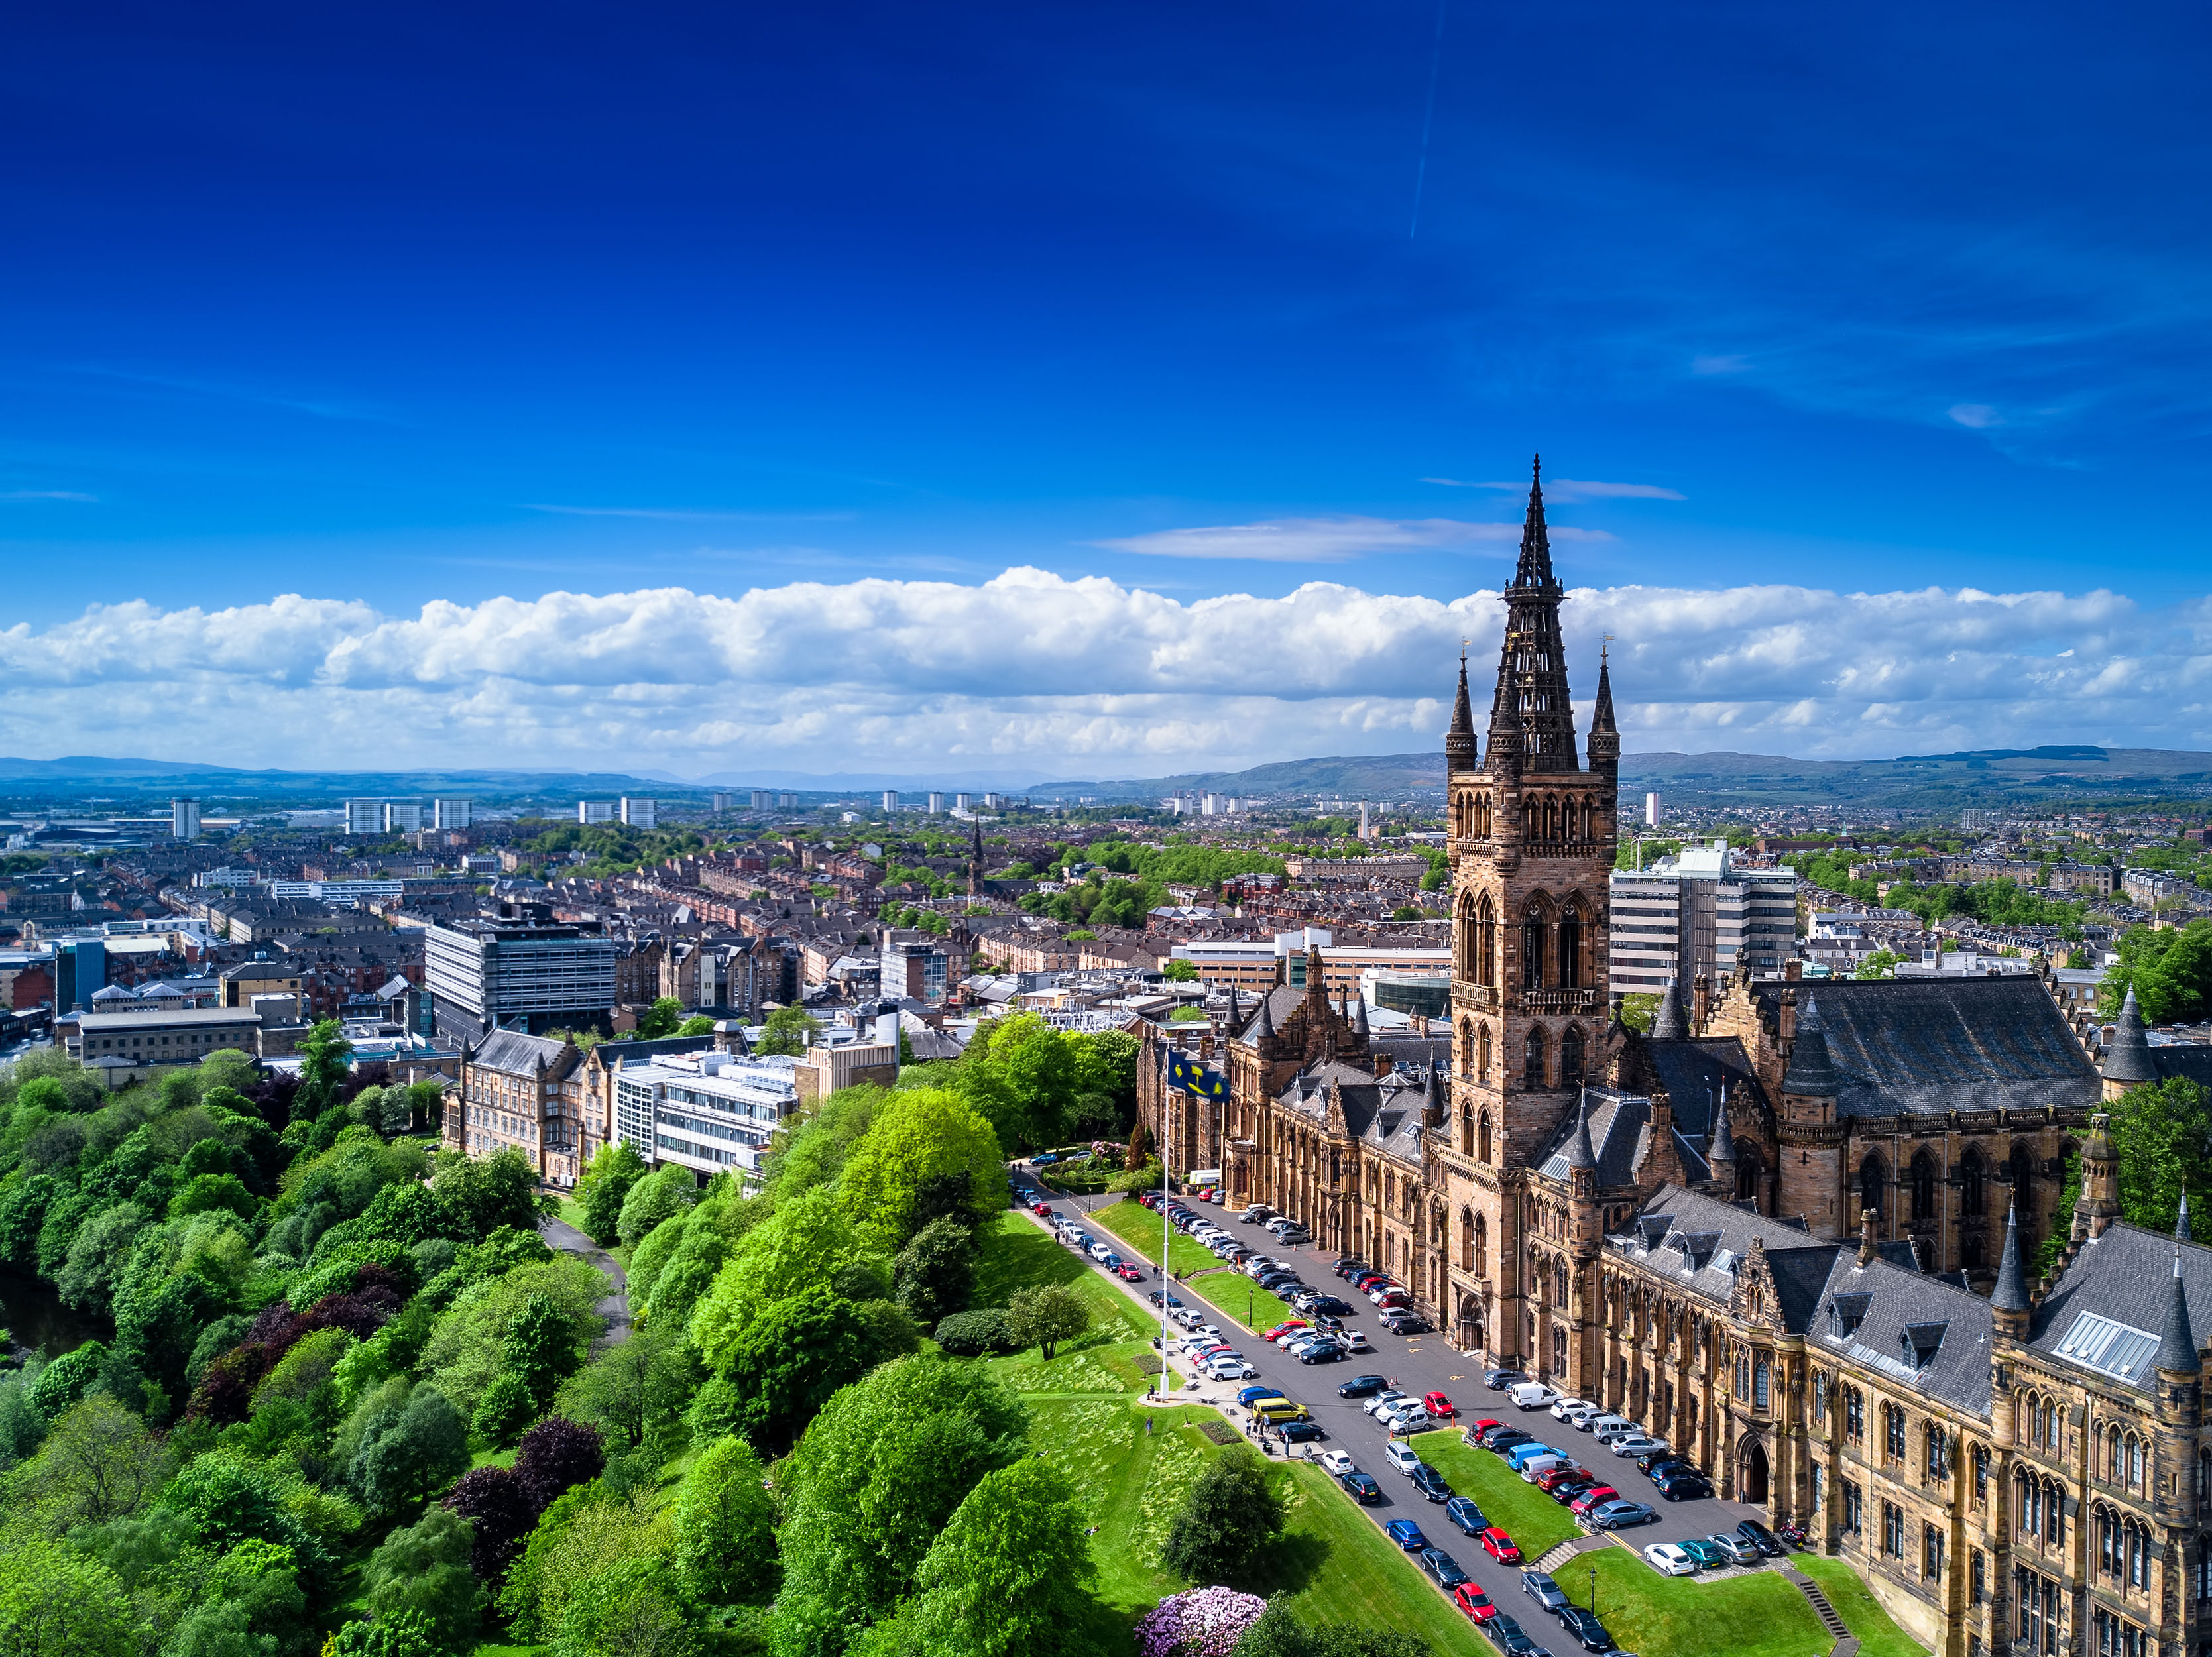 Glasgow, Glasgow city, Glasgow hotspot, fastest selling homes, selling homes